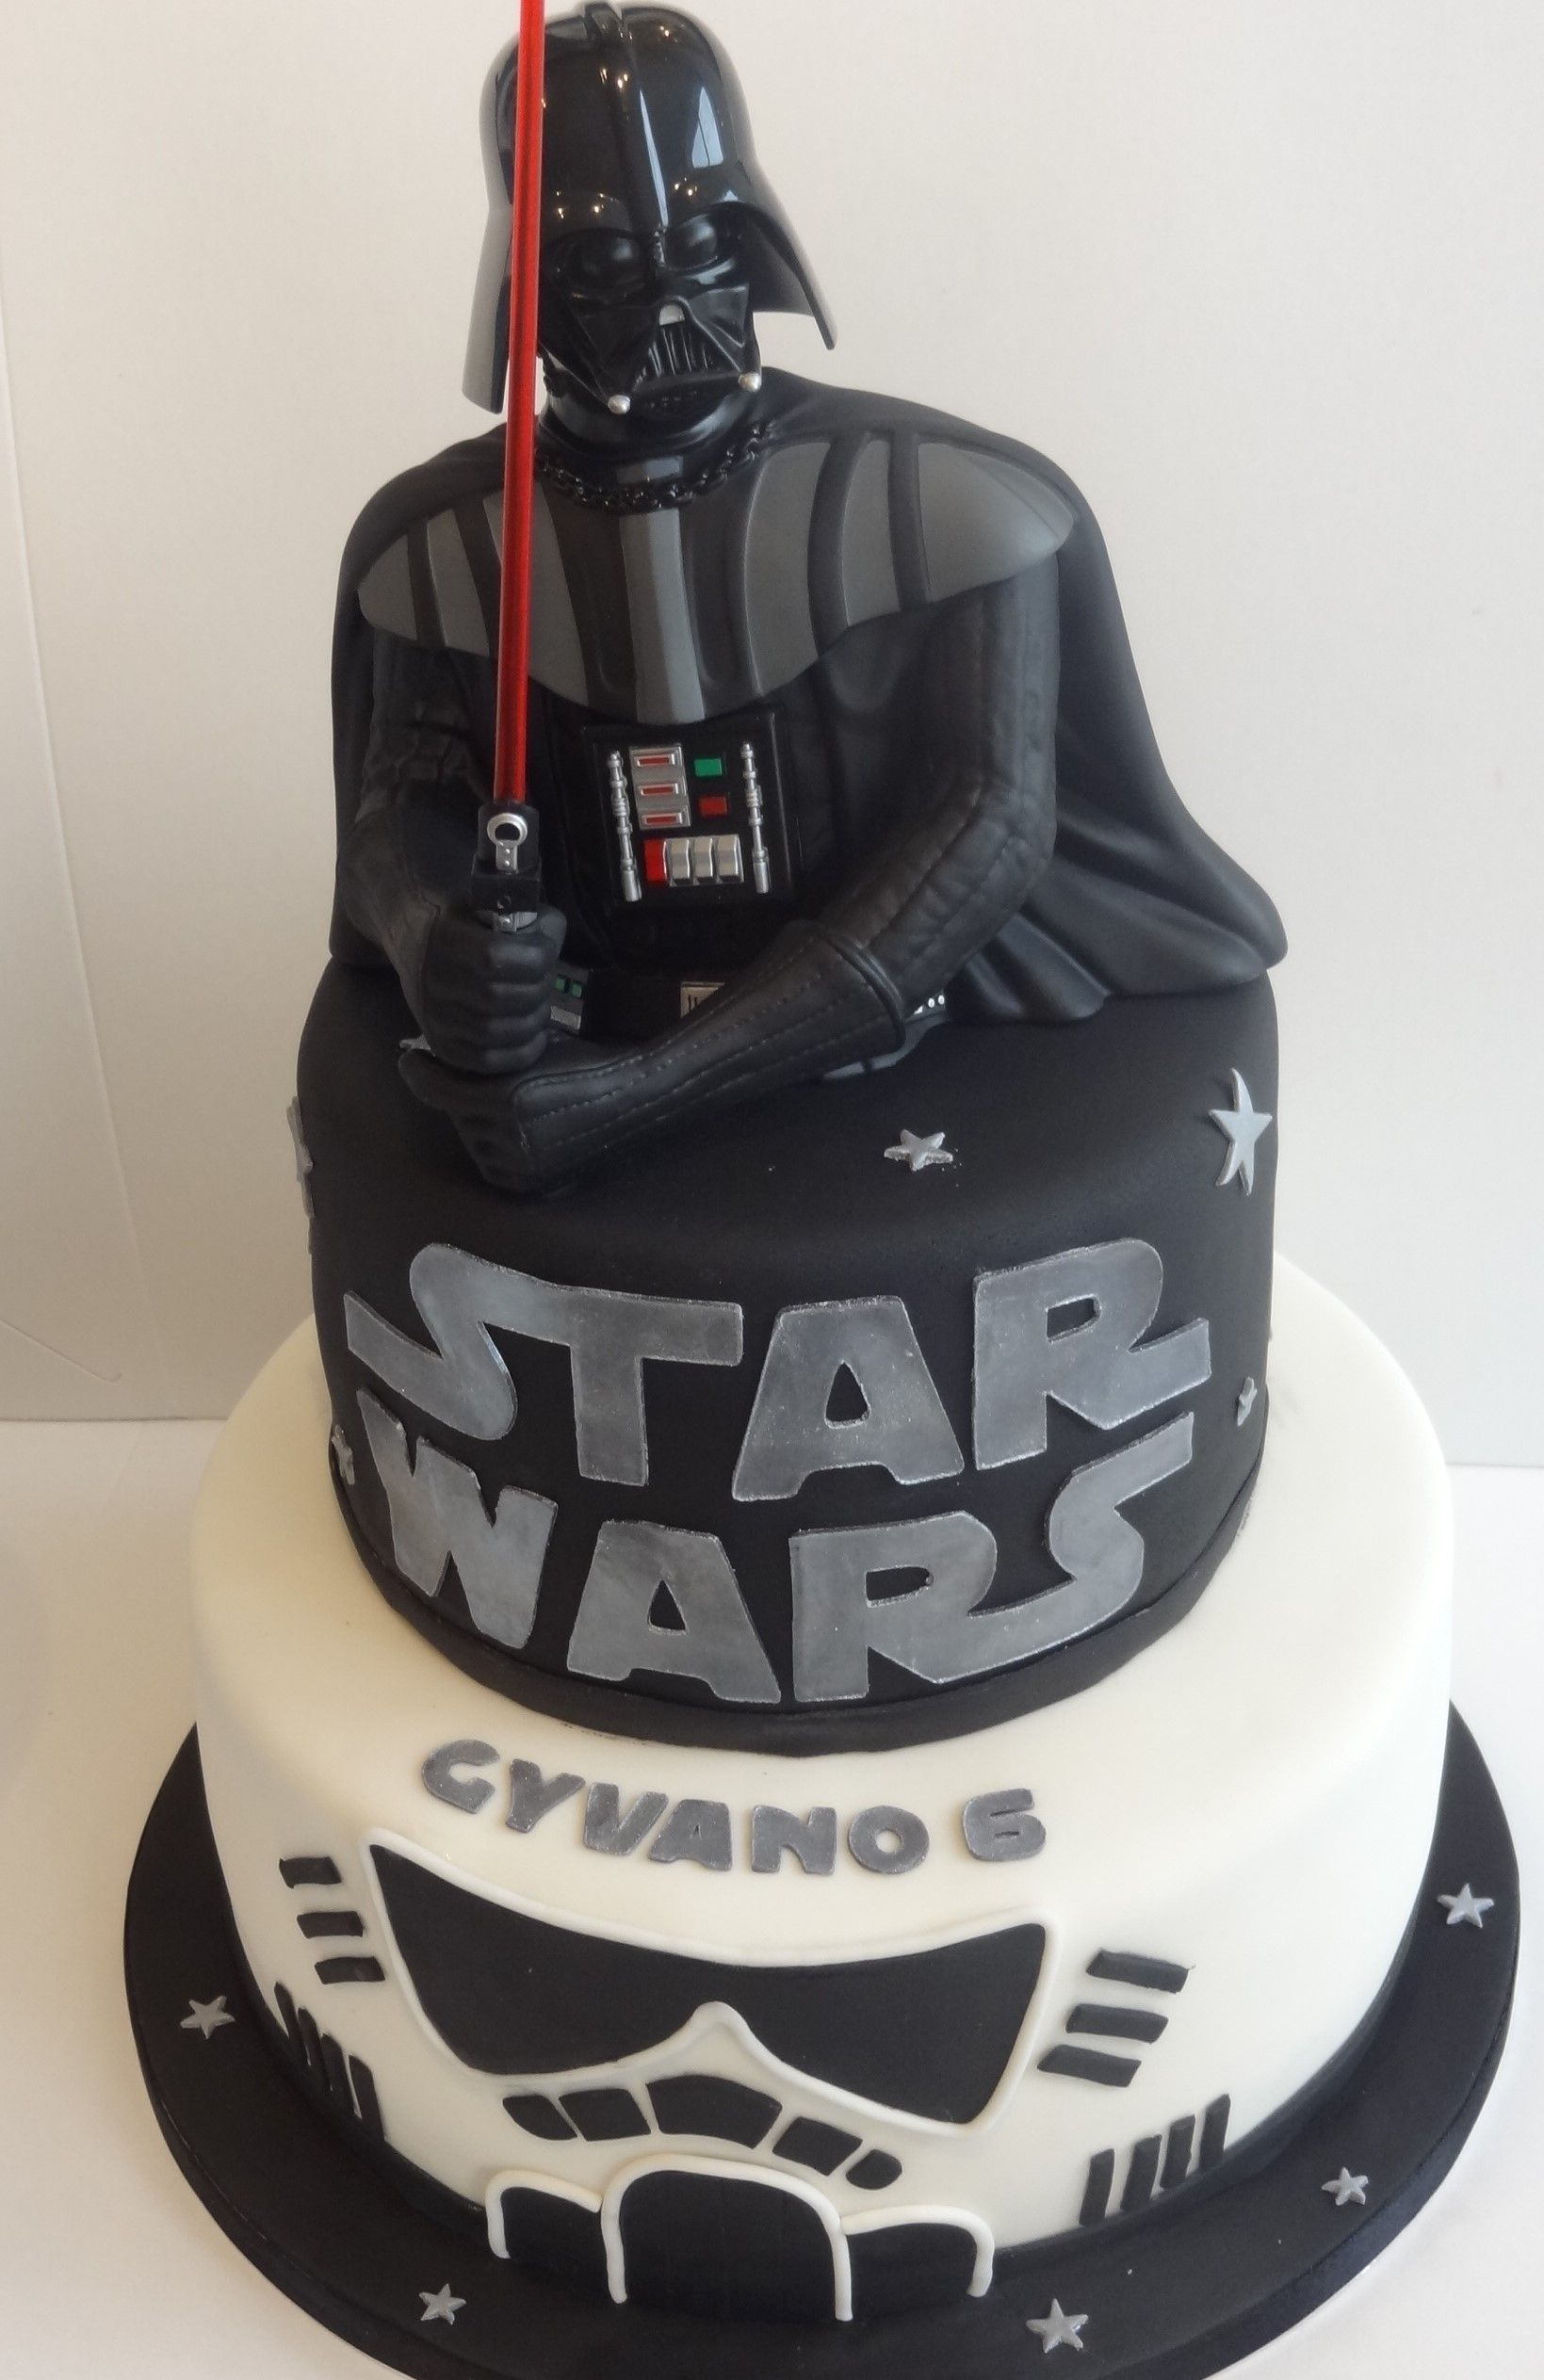 star wars cake for gyvano darth vader taarten van. Black Bedroom Furniture Sets. Home Design Ideas